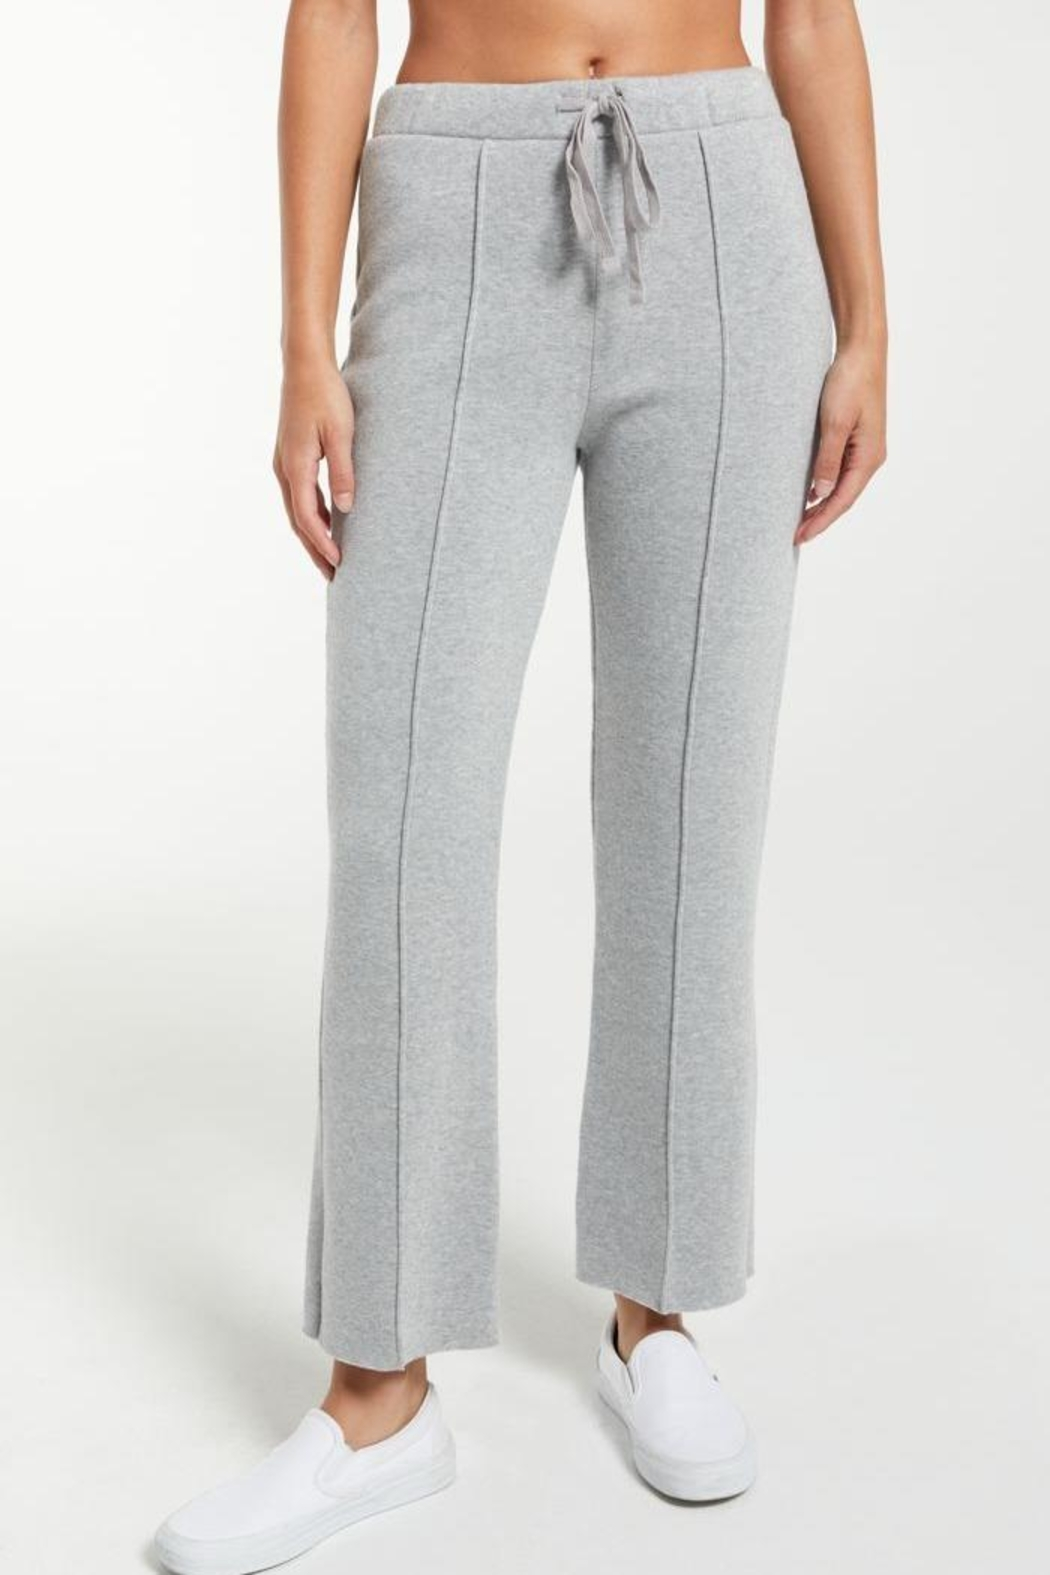 z supply Peyton Cropped Sweatpant - Front Cropped Image